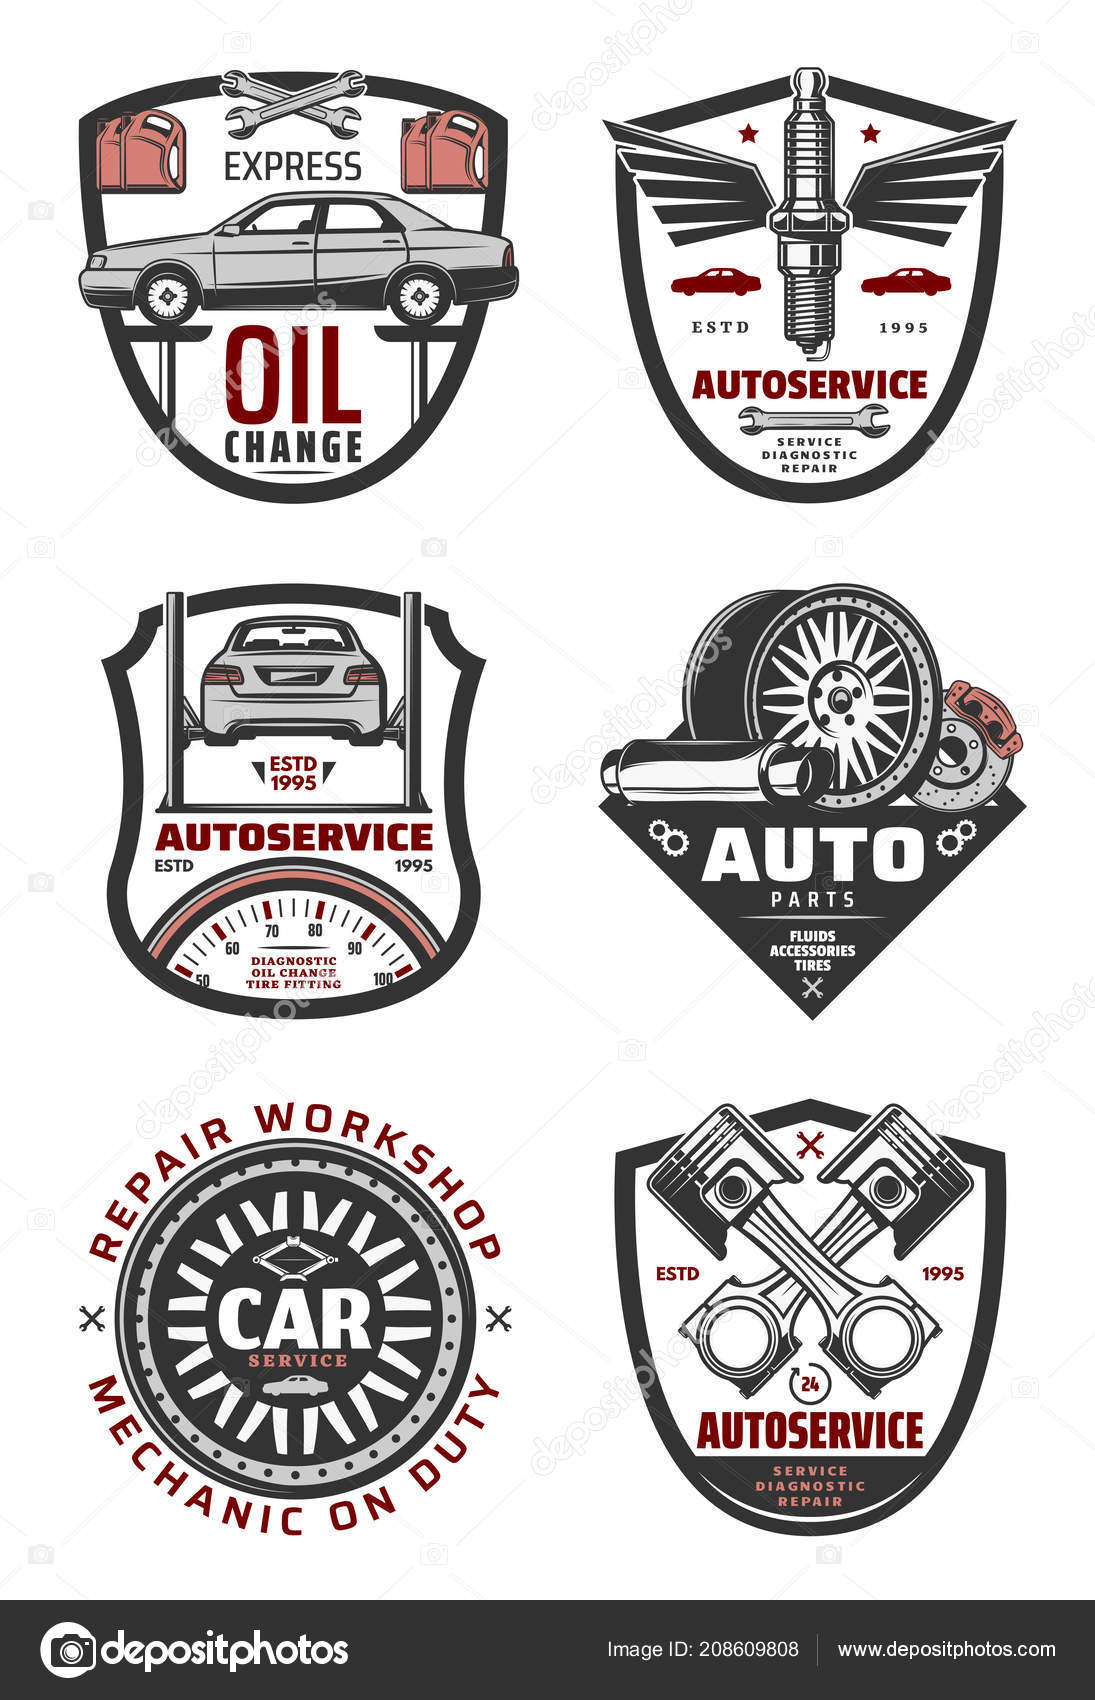 Car Repair Shop And Auto Service Vintage Badges Vector Image By C Seamartini Vector Stock 208609808